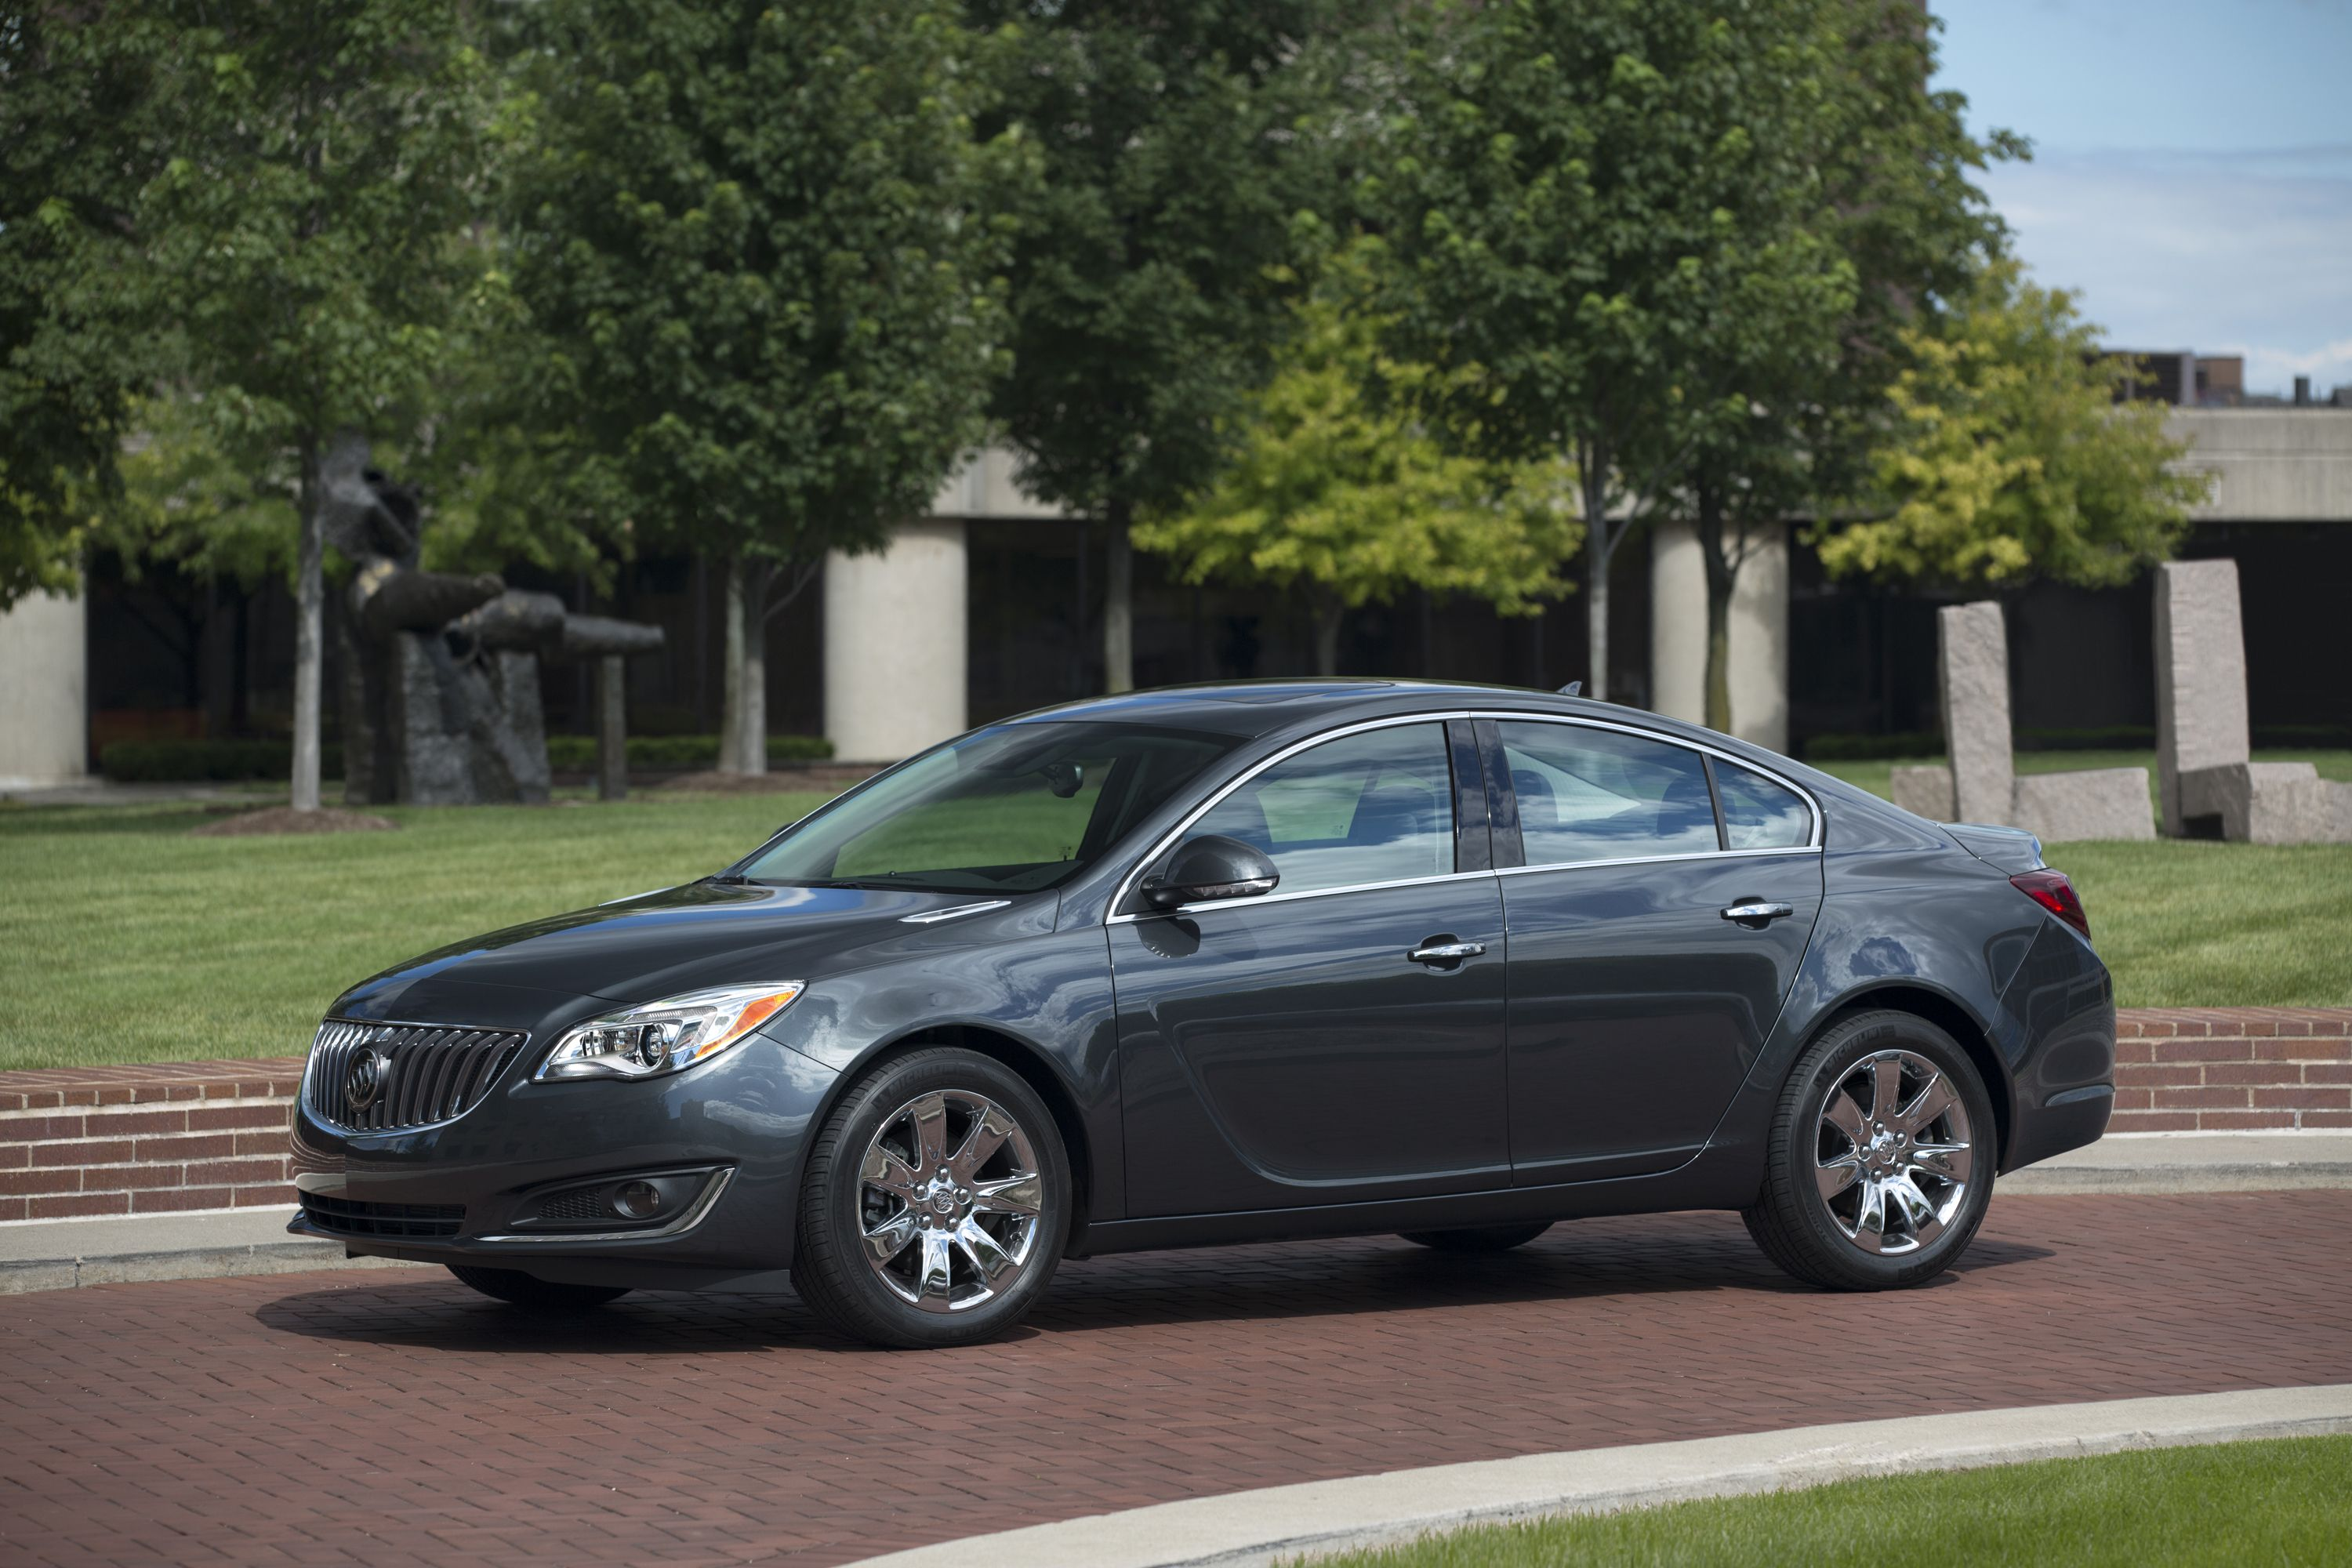 2014 buick regal in ashen gray exterior color and equipped with 18 wheels sunroof